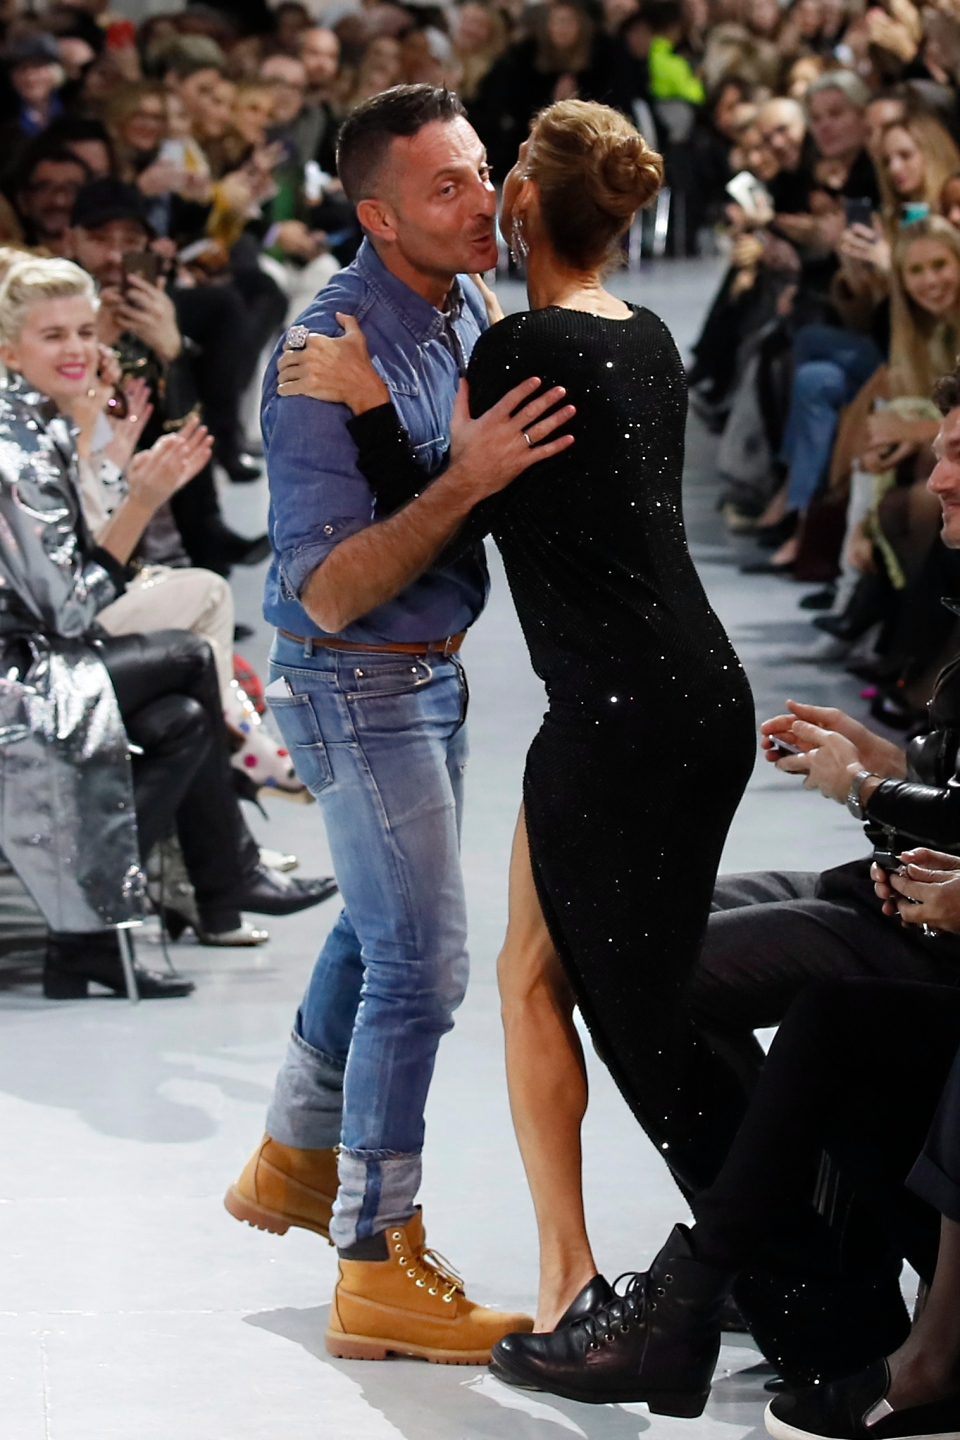 Singer Celine Dion, right, kisses designer Alexandre Vauthier after his Spring/Summer 2019 Haute Couture fashion collection presented in Paris, Tuesday Jan. 22, 2019. (AP Photo/Francois Mori)